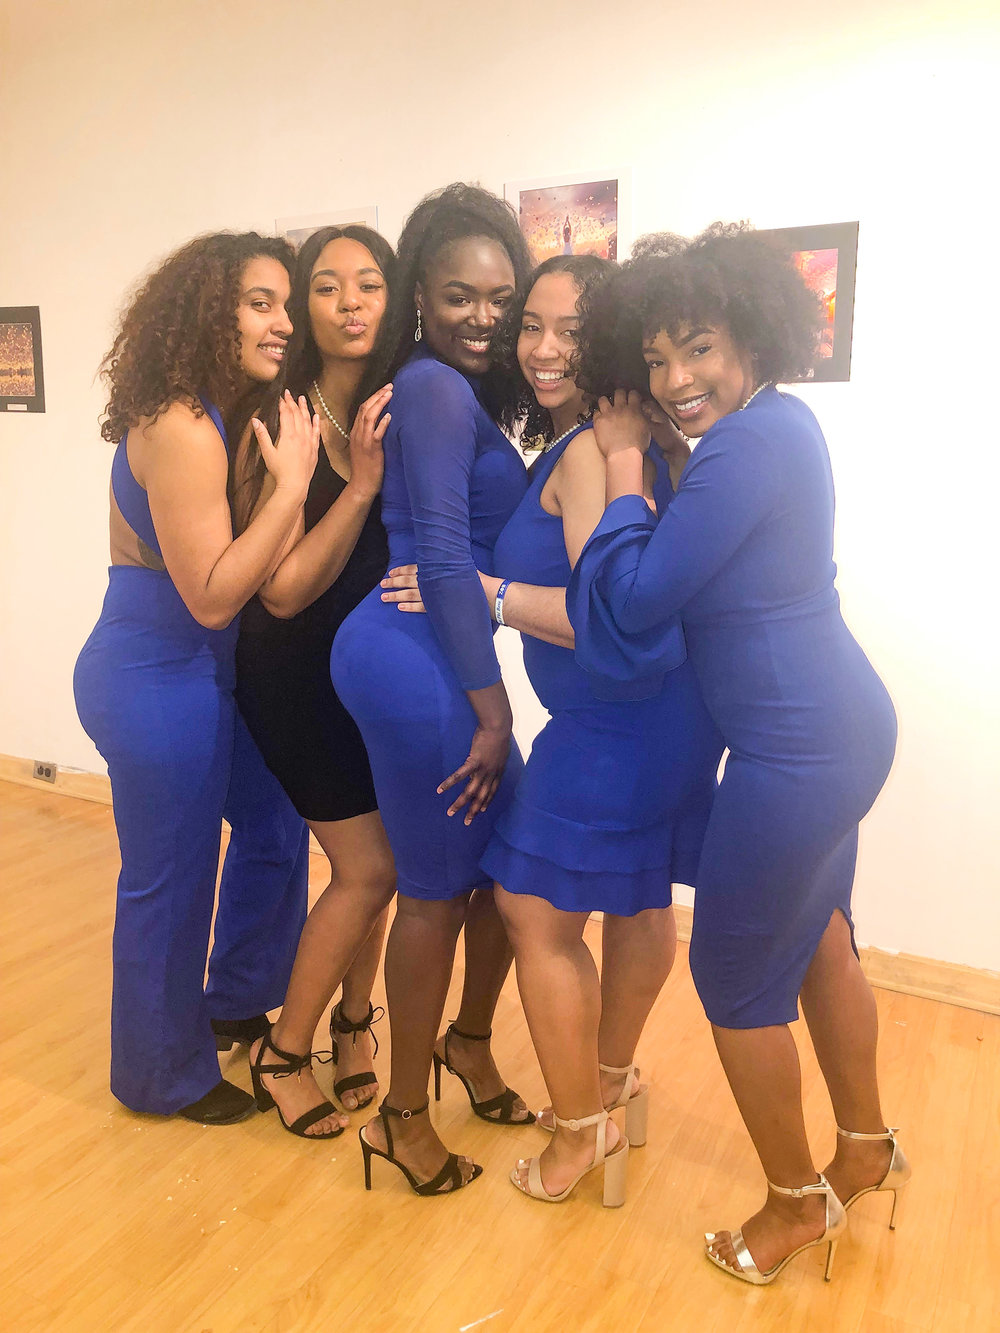 Geneseo's Zeta Phi Beta chapter (pictured above) is a historically black sorority and currently consists of five active members. Although they are small in numbers, the sisters of Zeta Phi Beta have a strong and supportive alumni base who continue to be actively involved with their chapter (Courtesy of Maiah Walton).